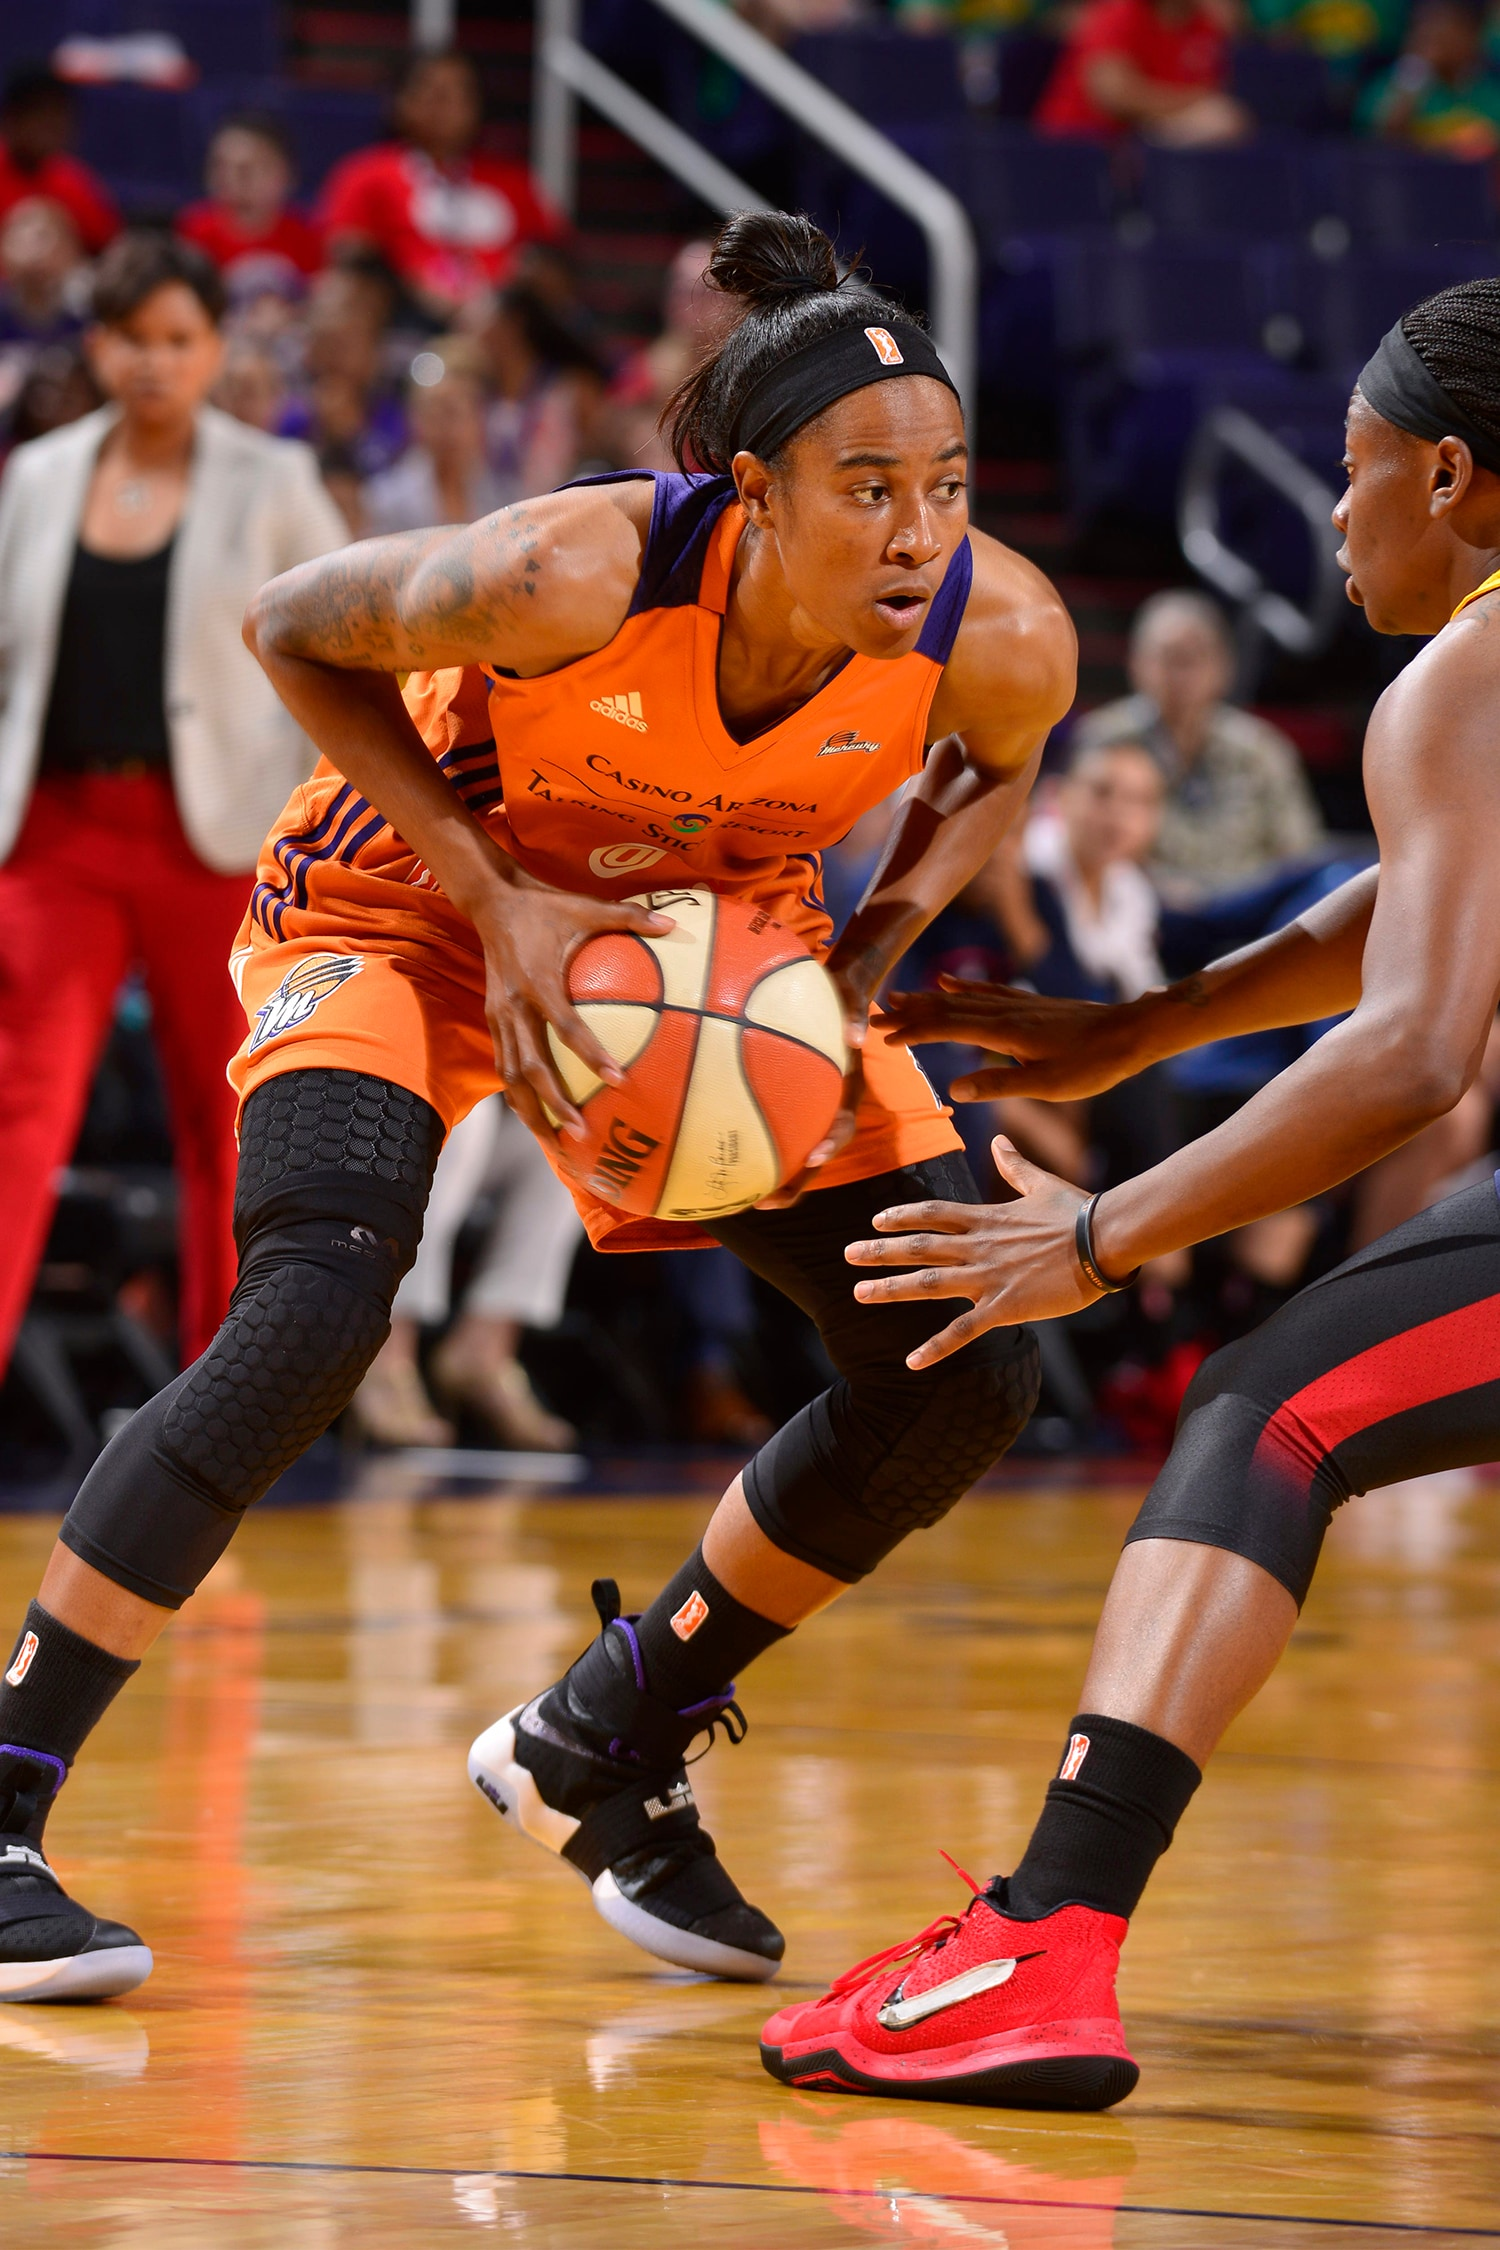 phoenix mercury indiana fever july 19, 2017 yvonne turner